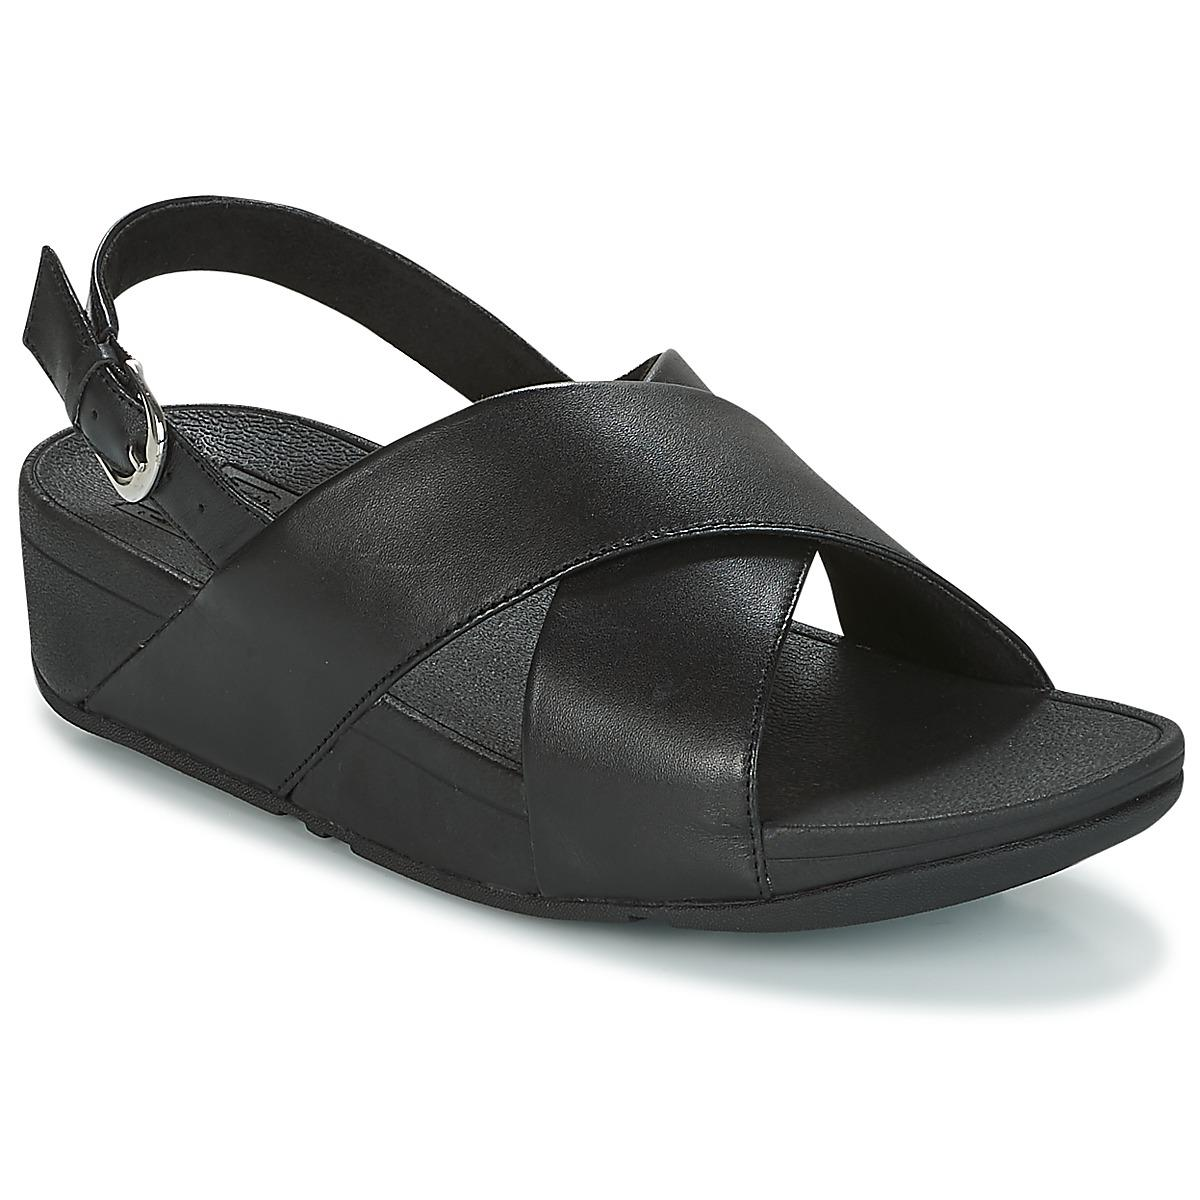 a238208362f7 Fitflop. Women s Black Lulu Cross Back-strap Sandals - Leather Sandals